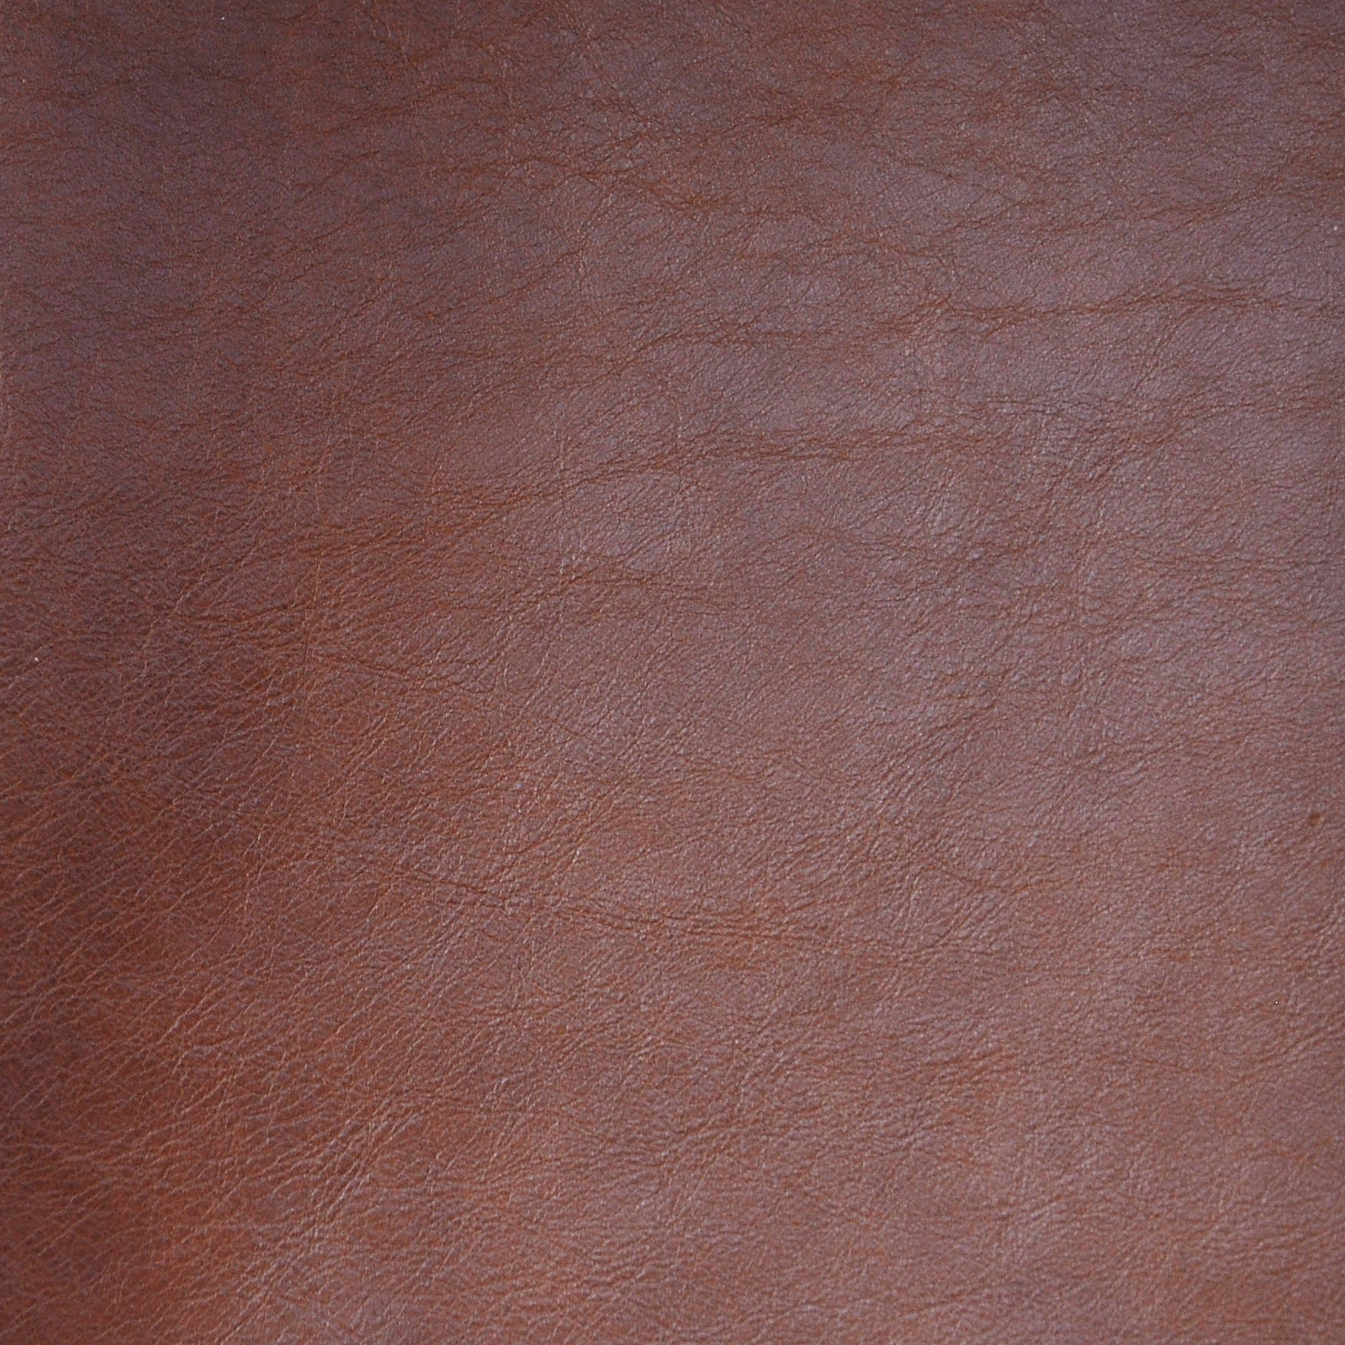 nappa leather in tan color